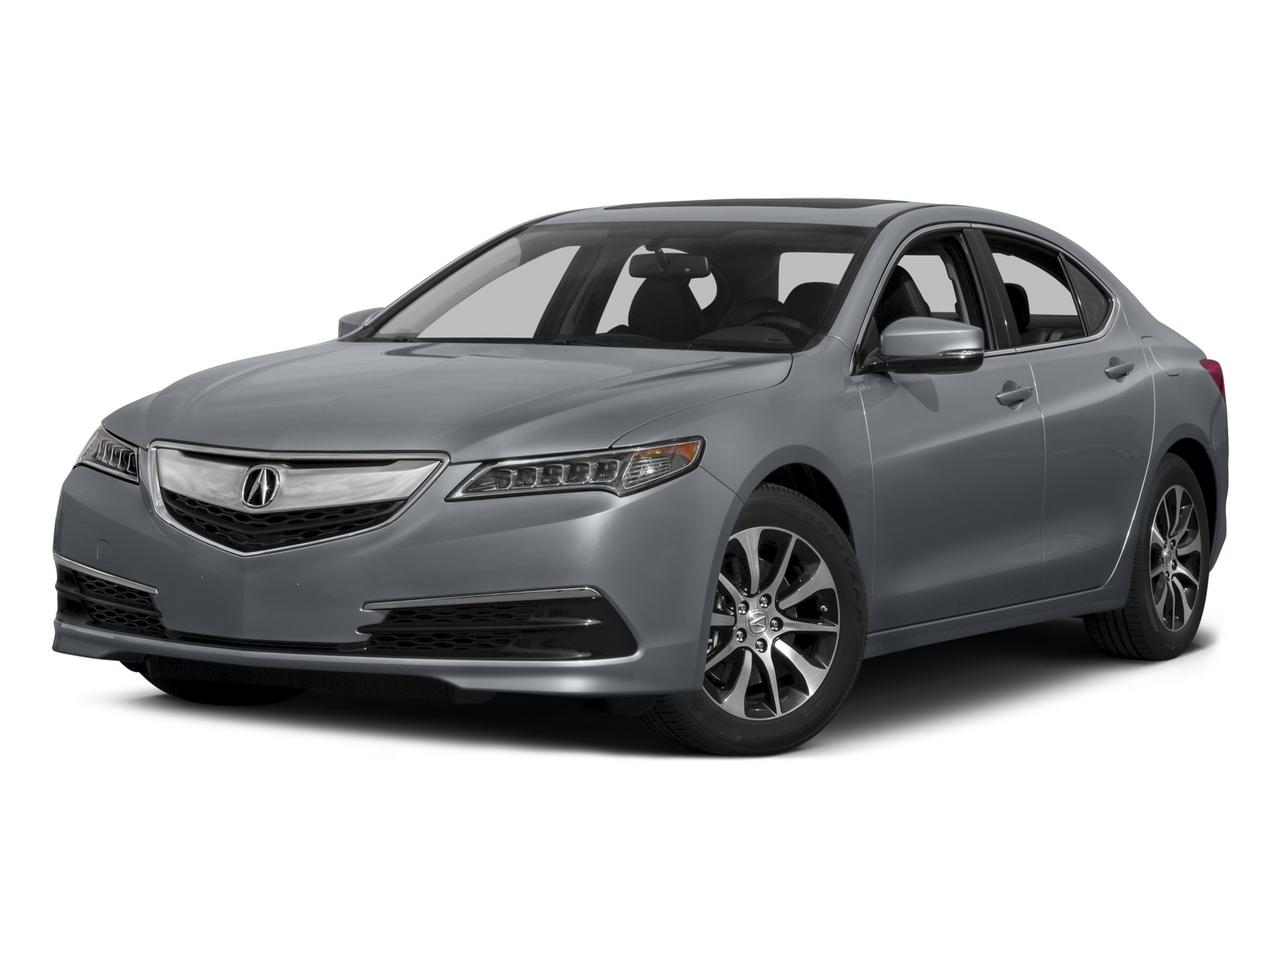 2015 Acura TLX Vehicle Photo in Oklahoma City, OK 73131